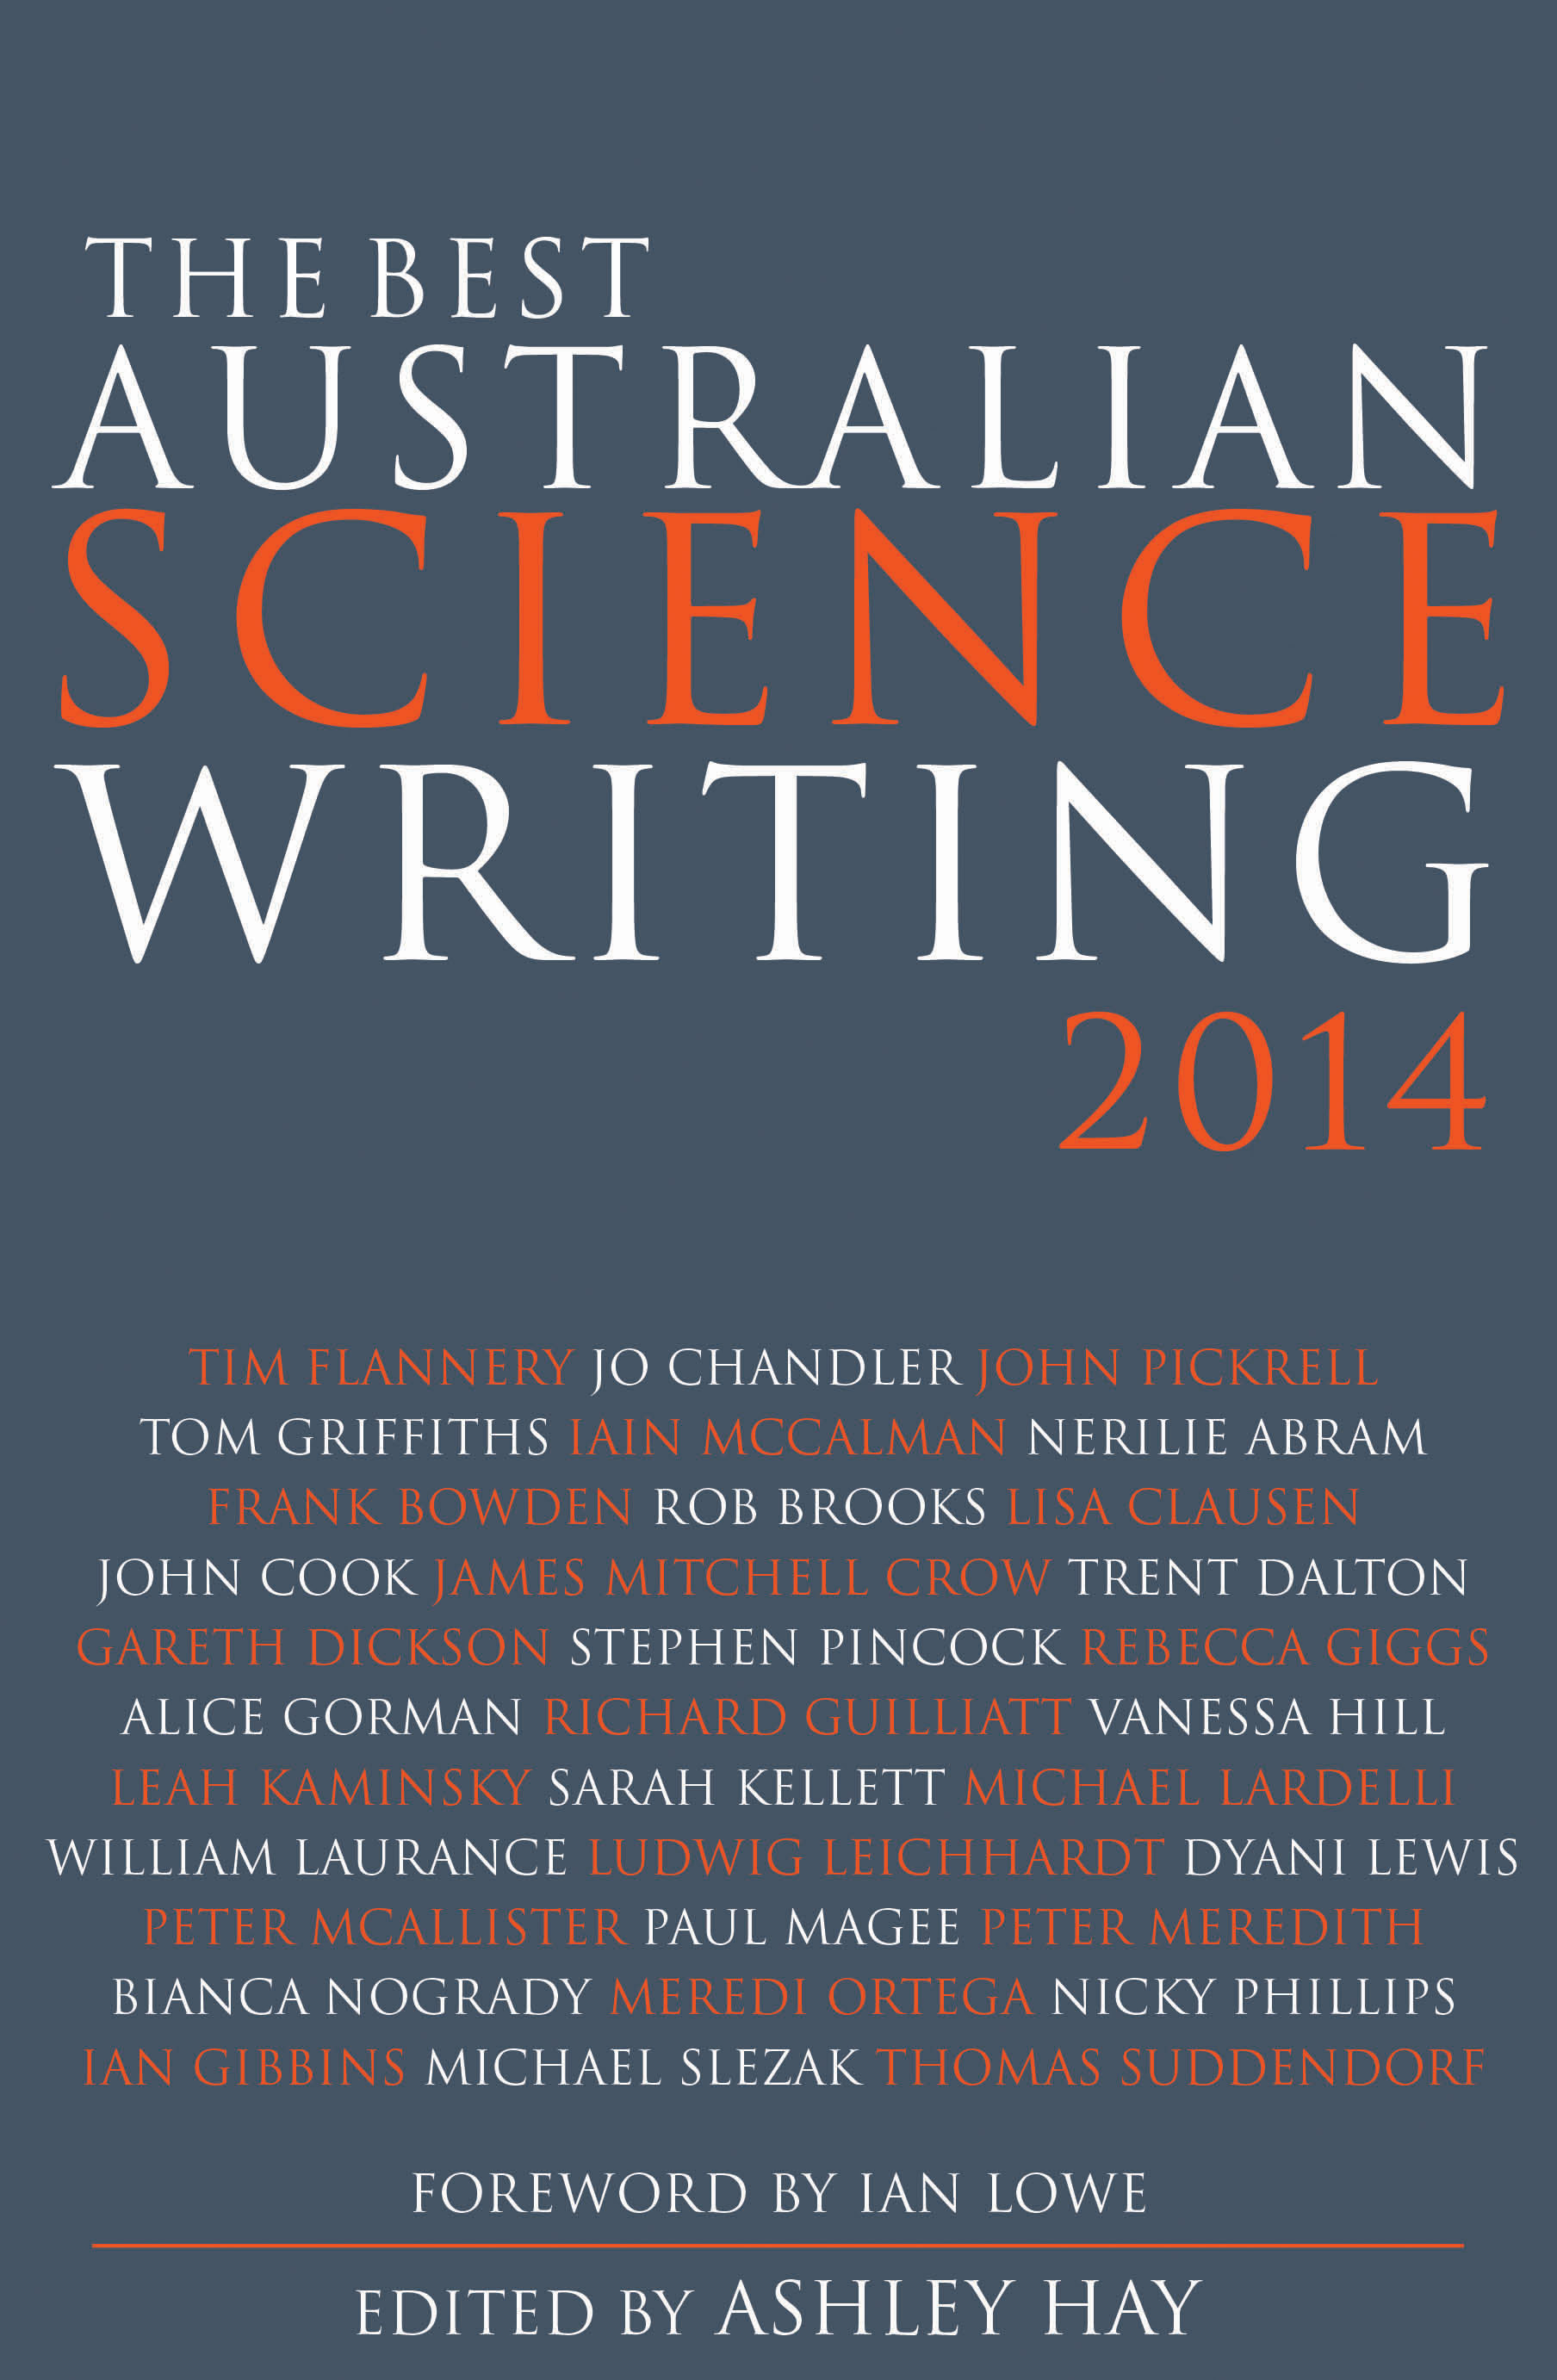 Writing about science